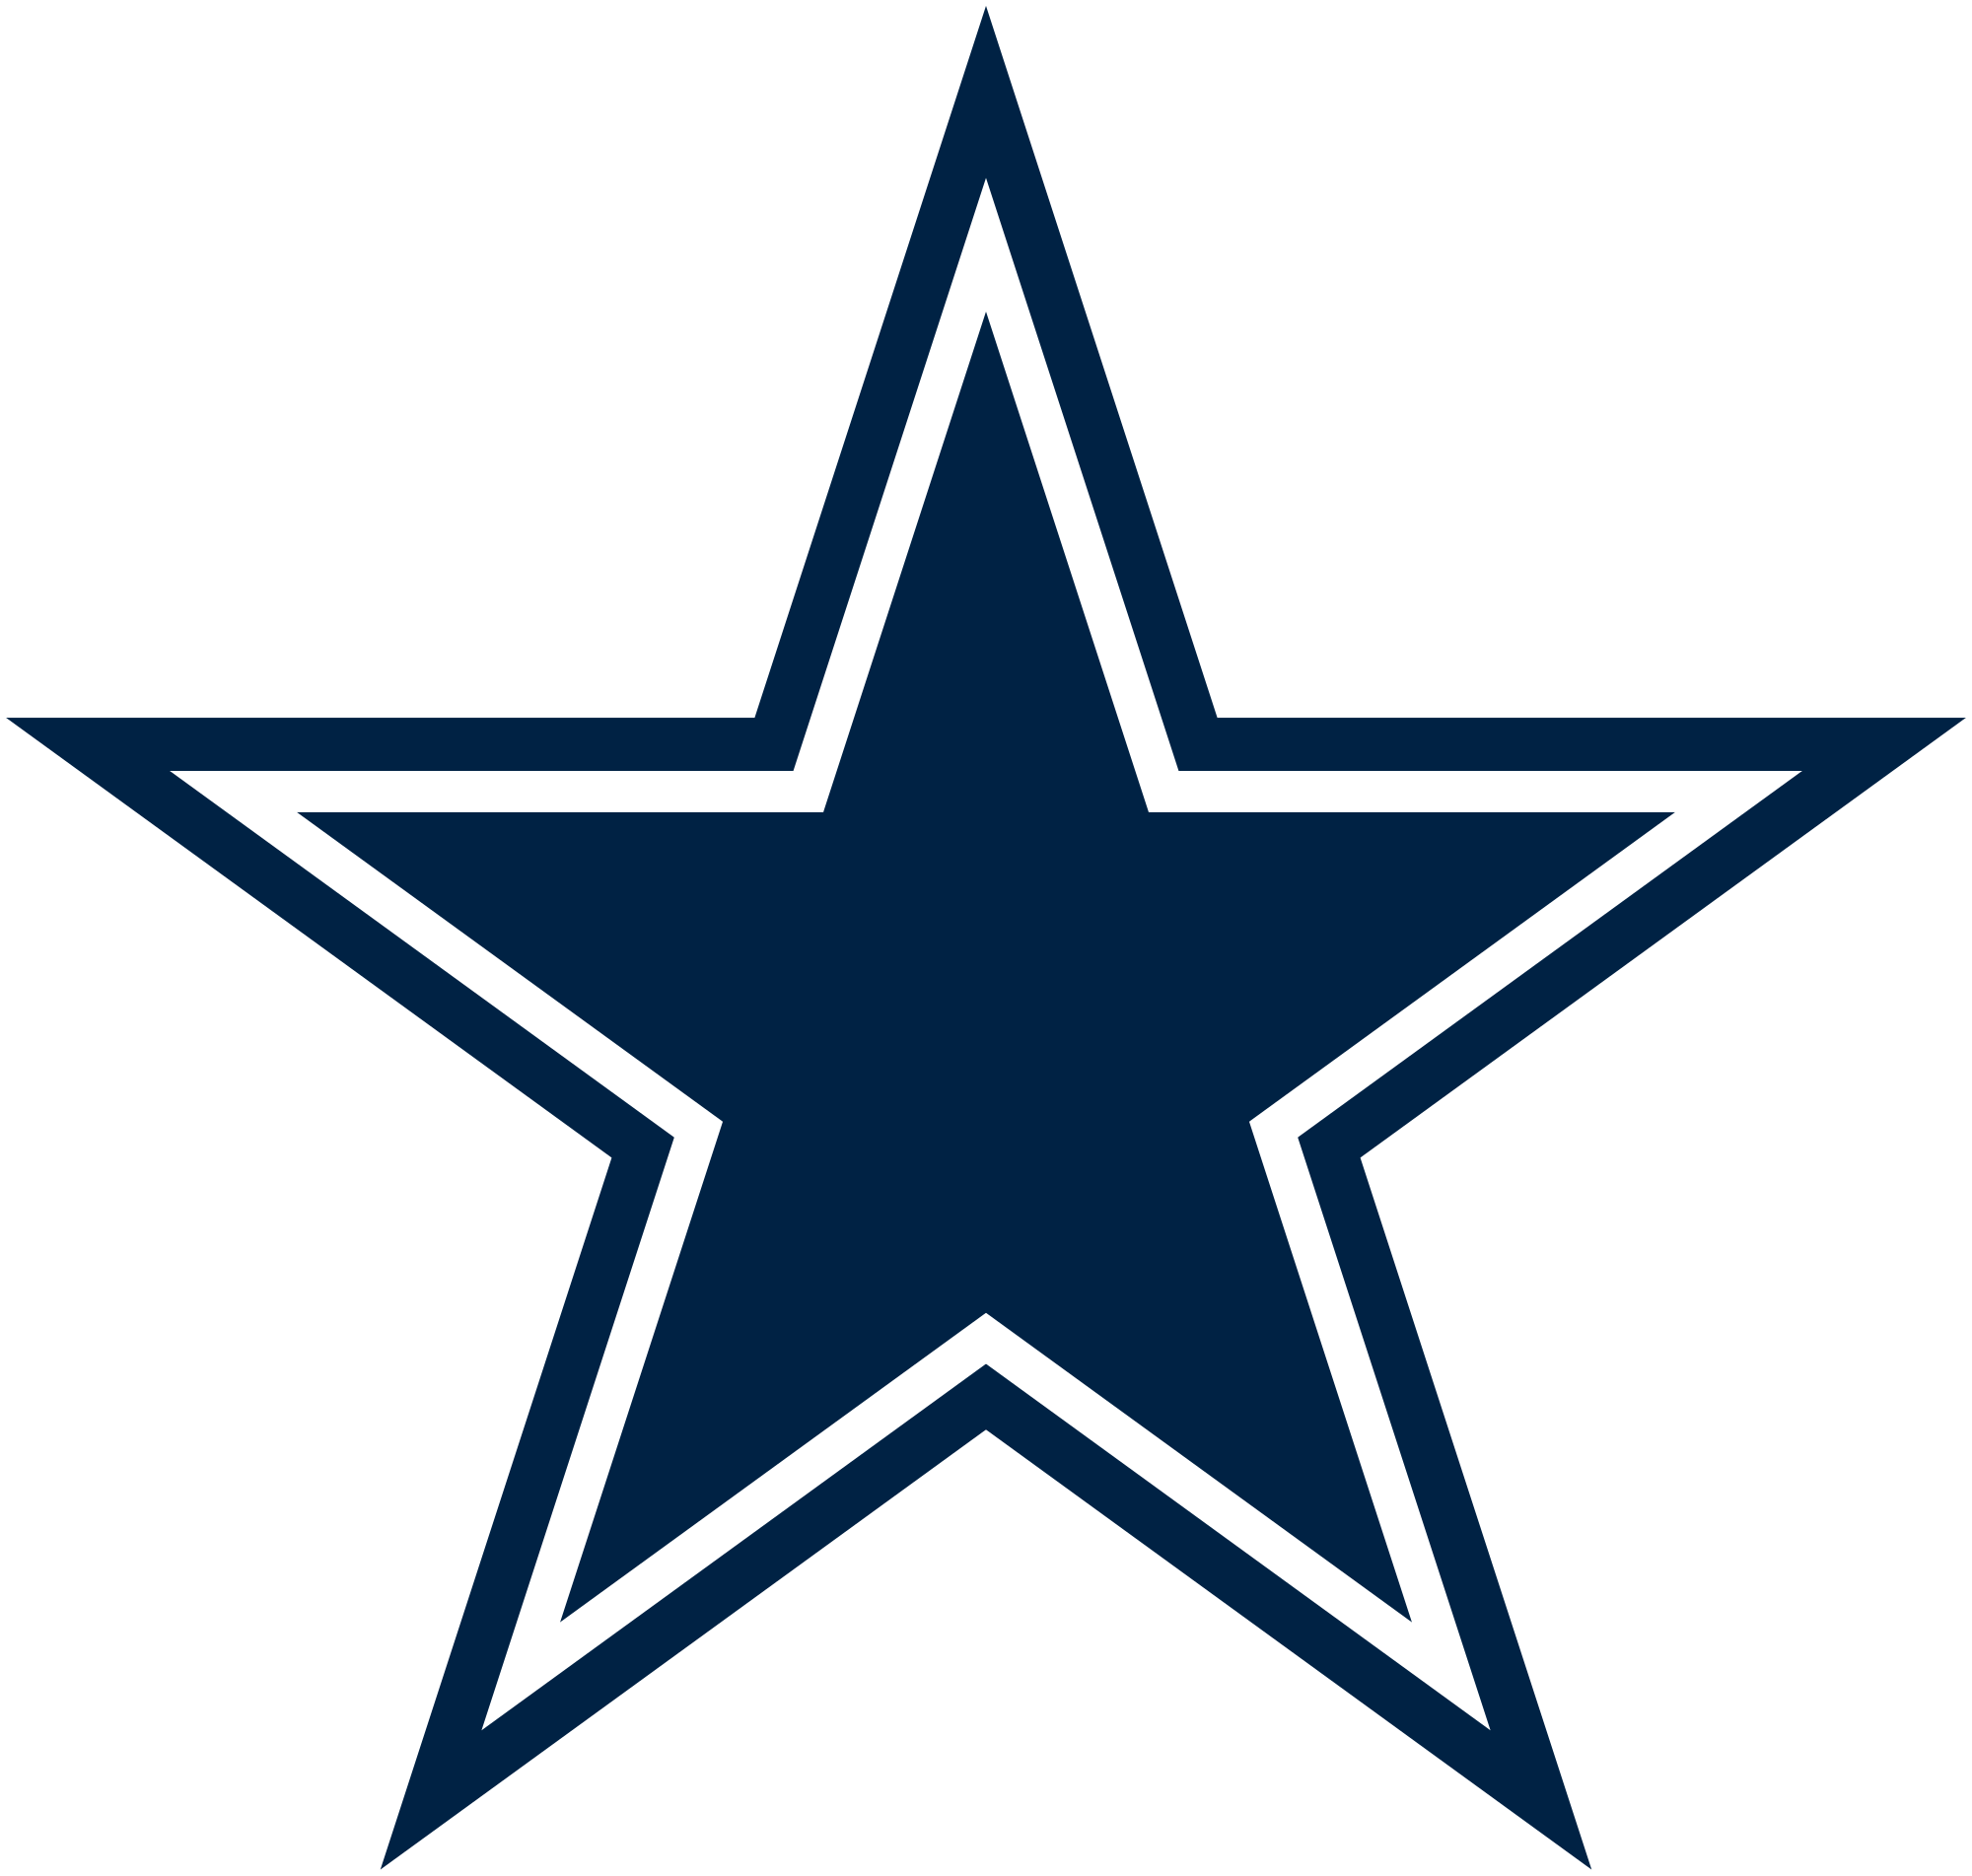 Texas ranger star clipart jpg freeuse download Early NFL Power Rankings - Switching To The NFC East | Pinterest ... jpg freeuse download